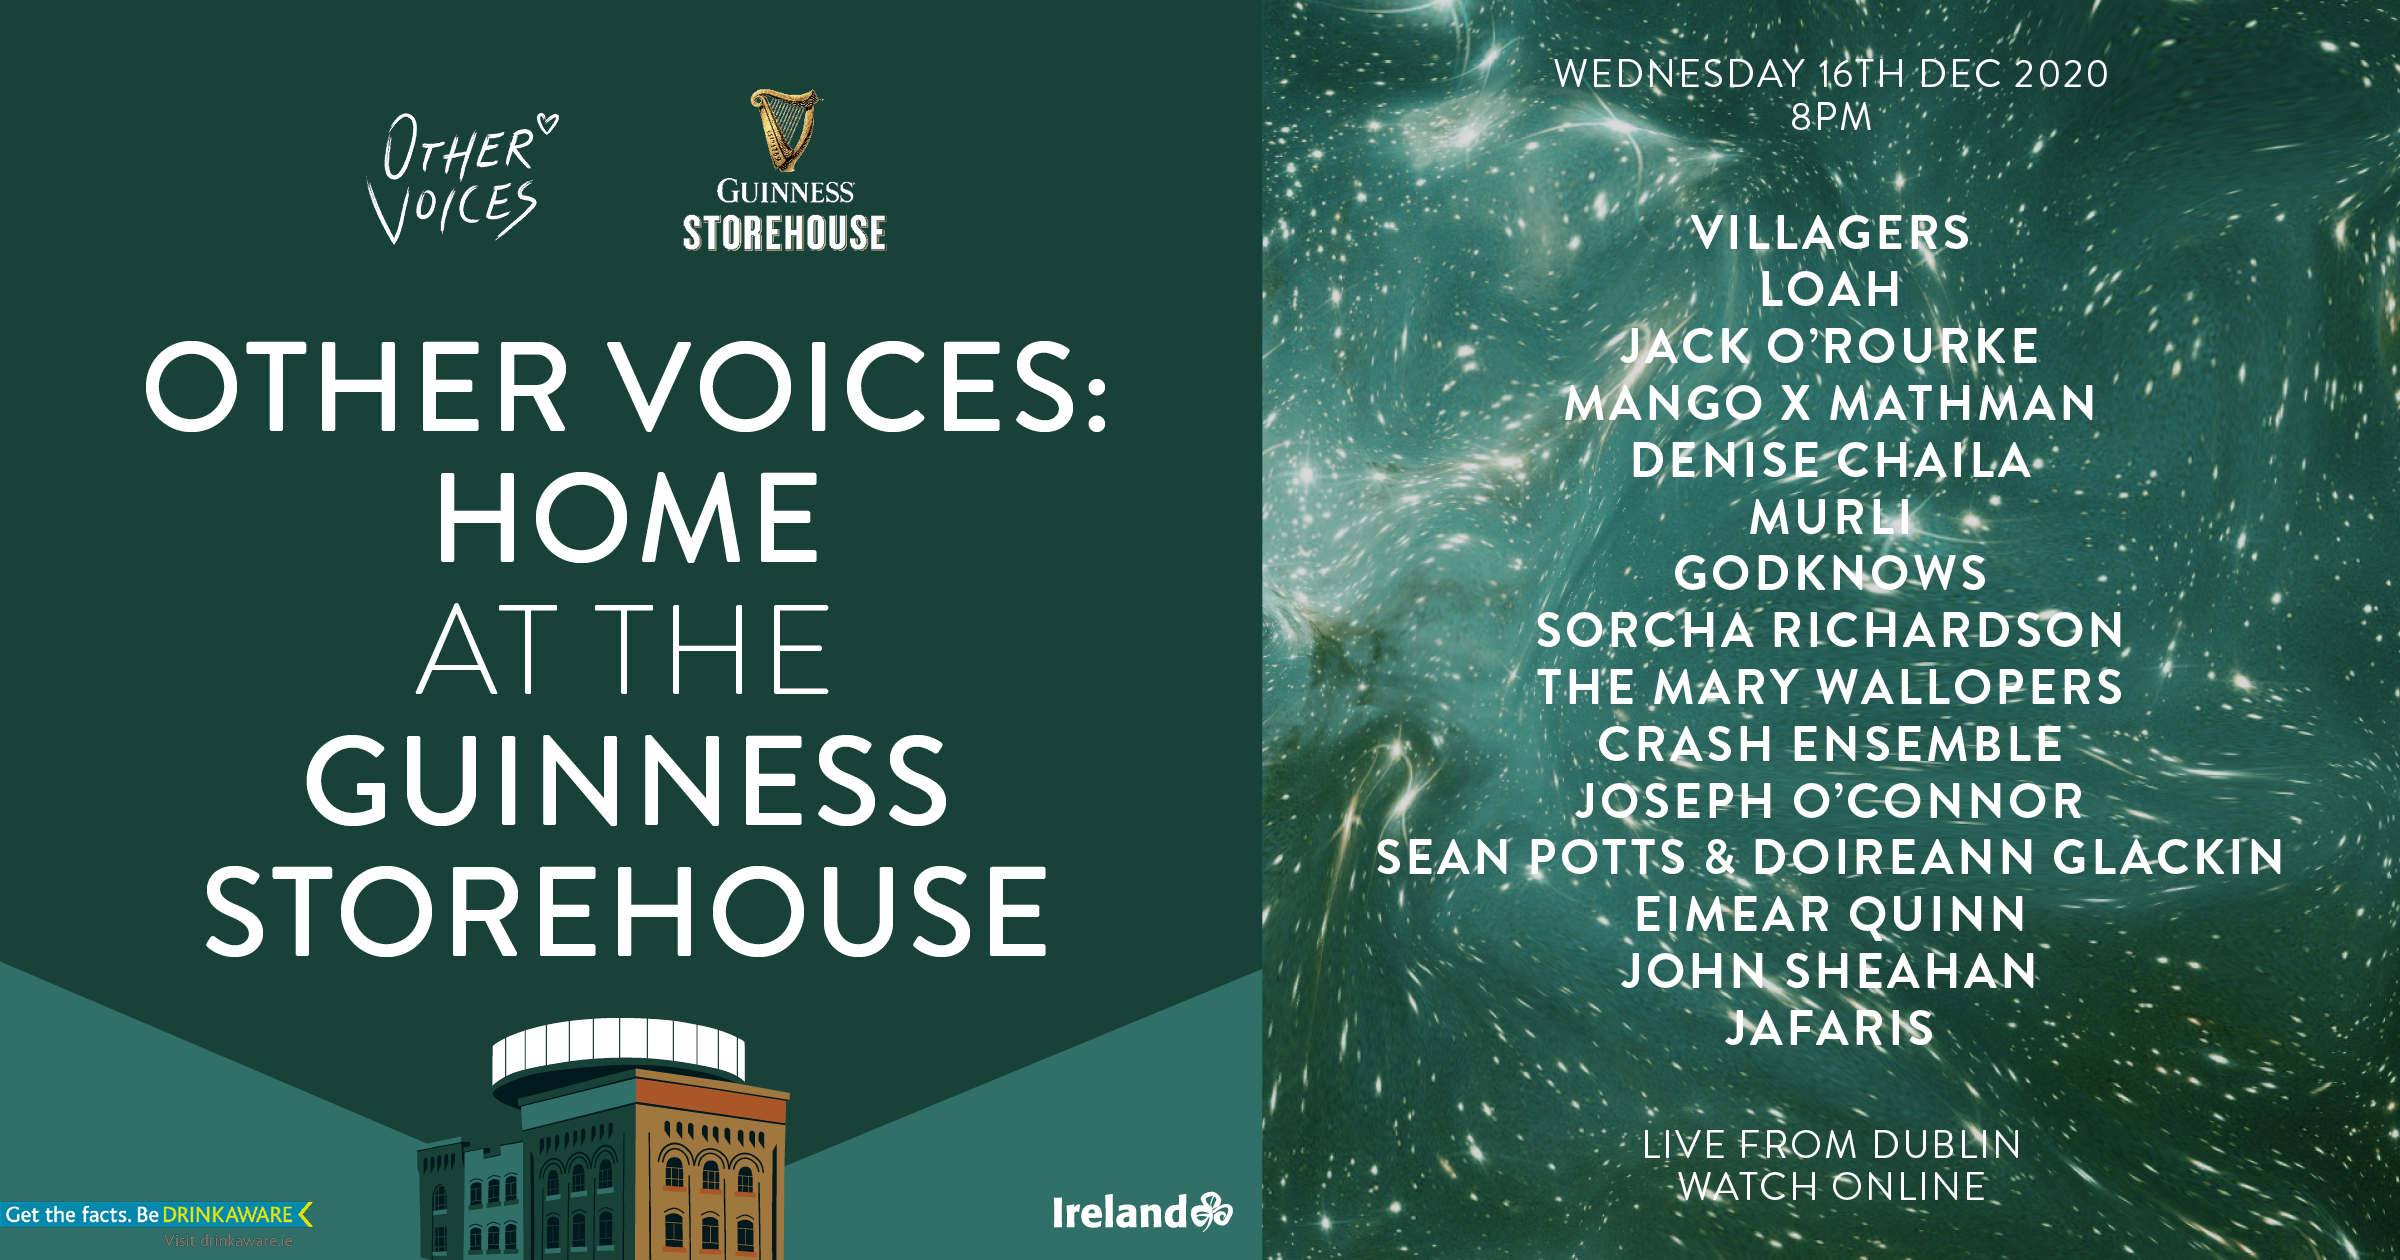 Other Voices presents: Home at the Guinness Storehouse